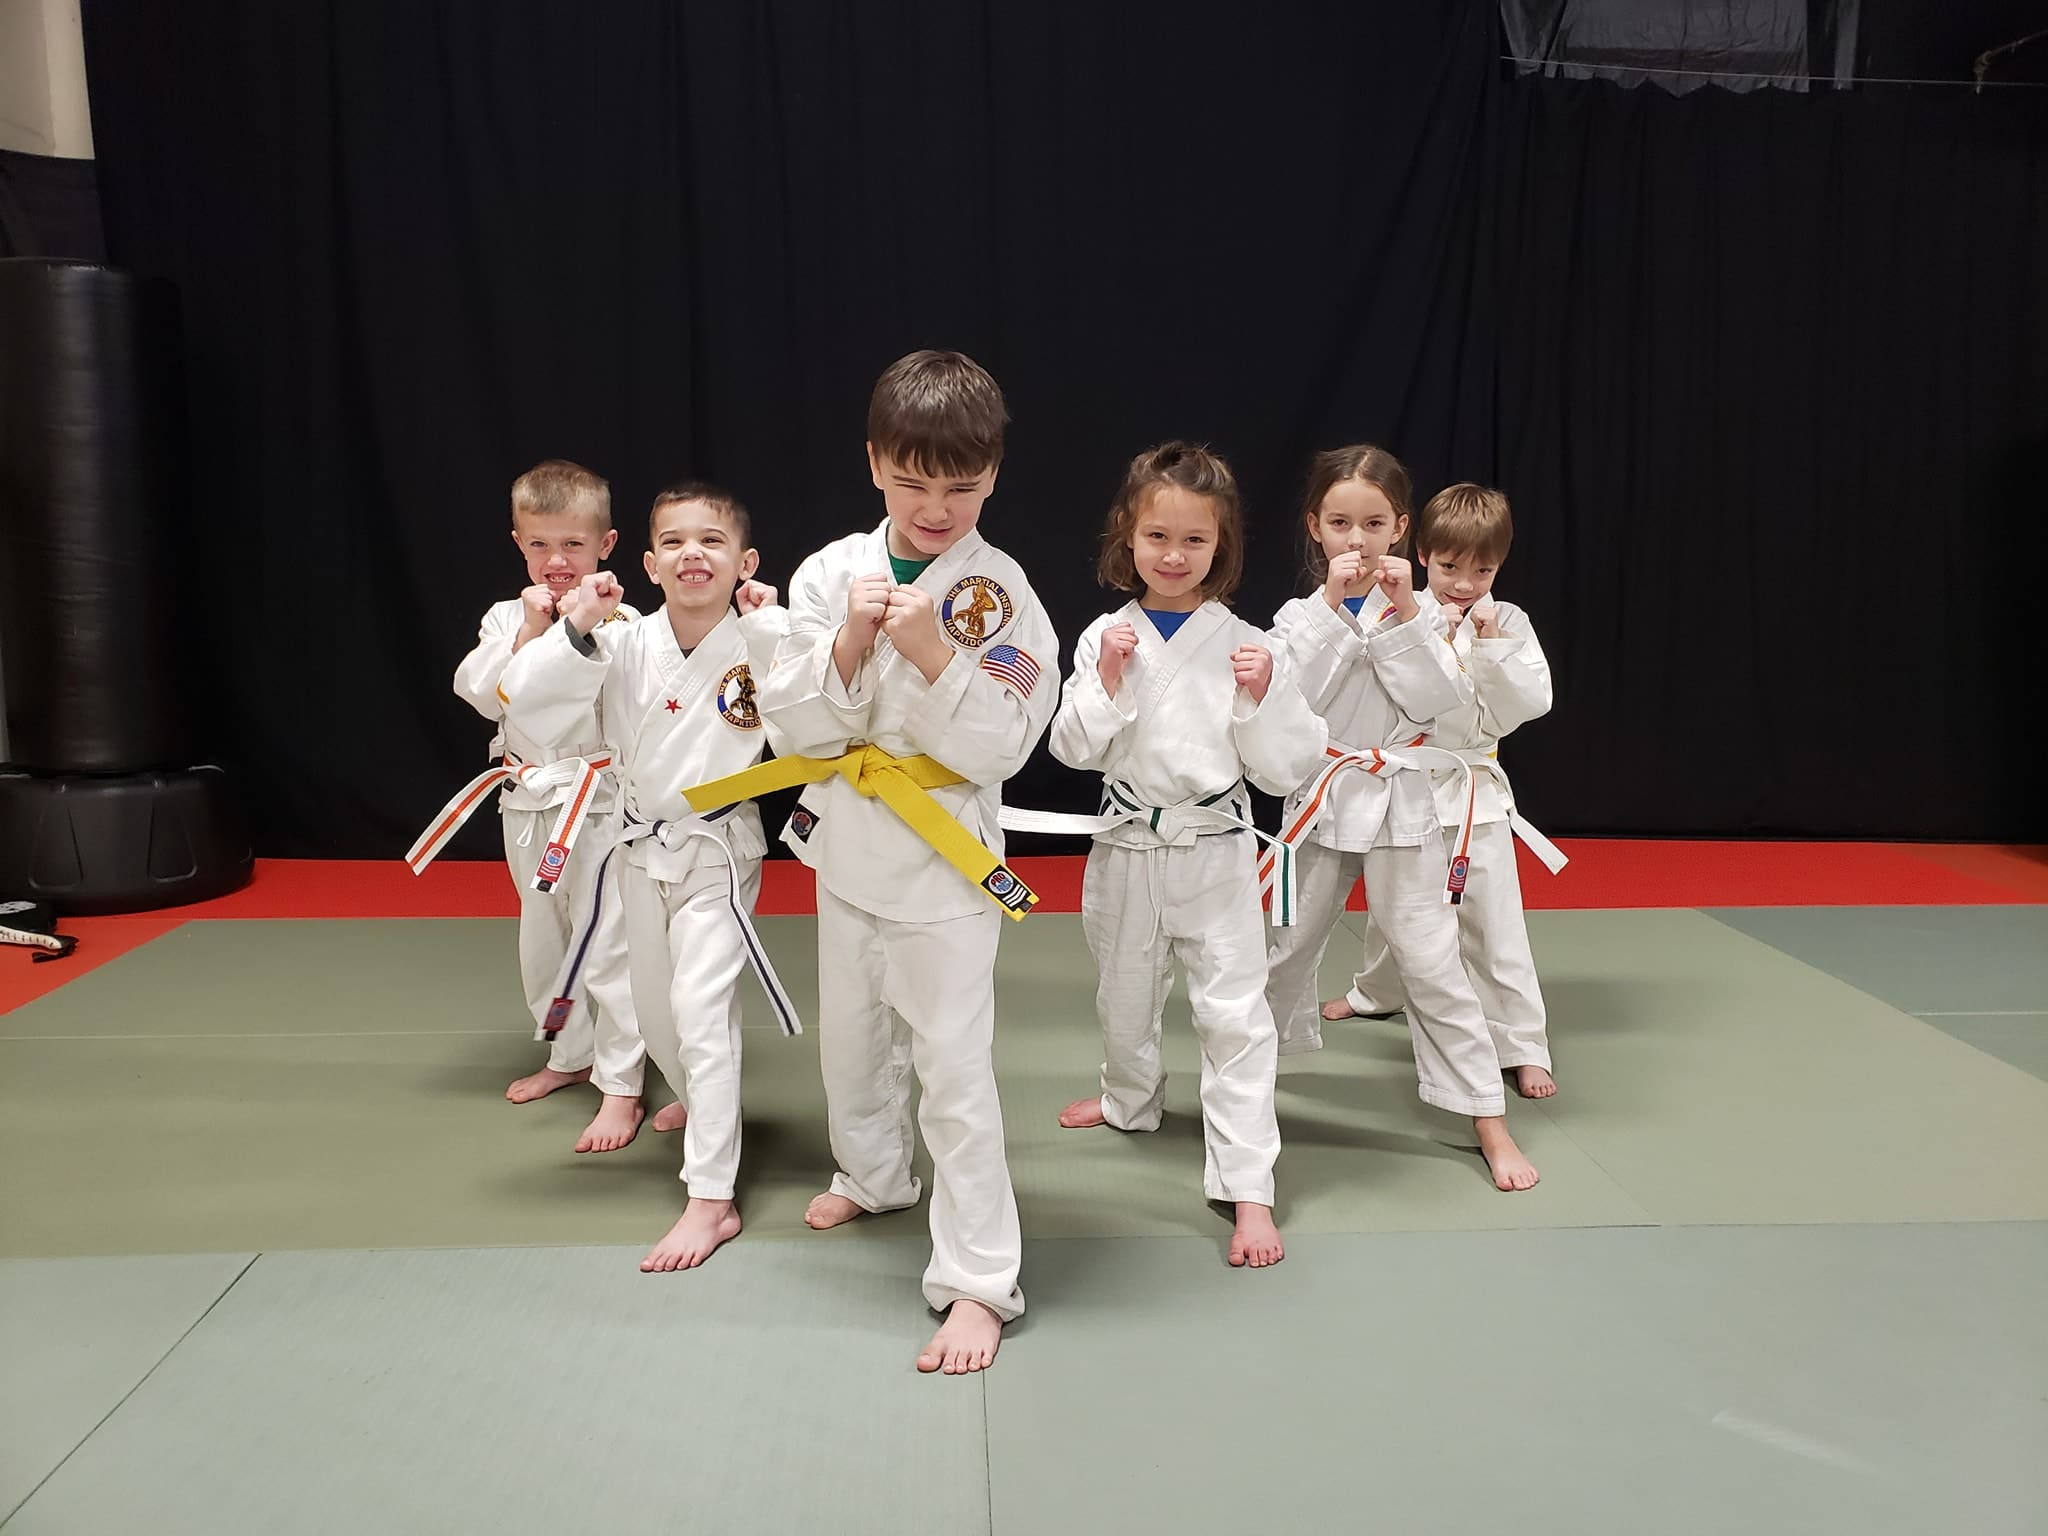 The Martial Instinct Self-Defense Special Offers image